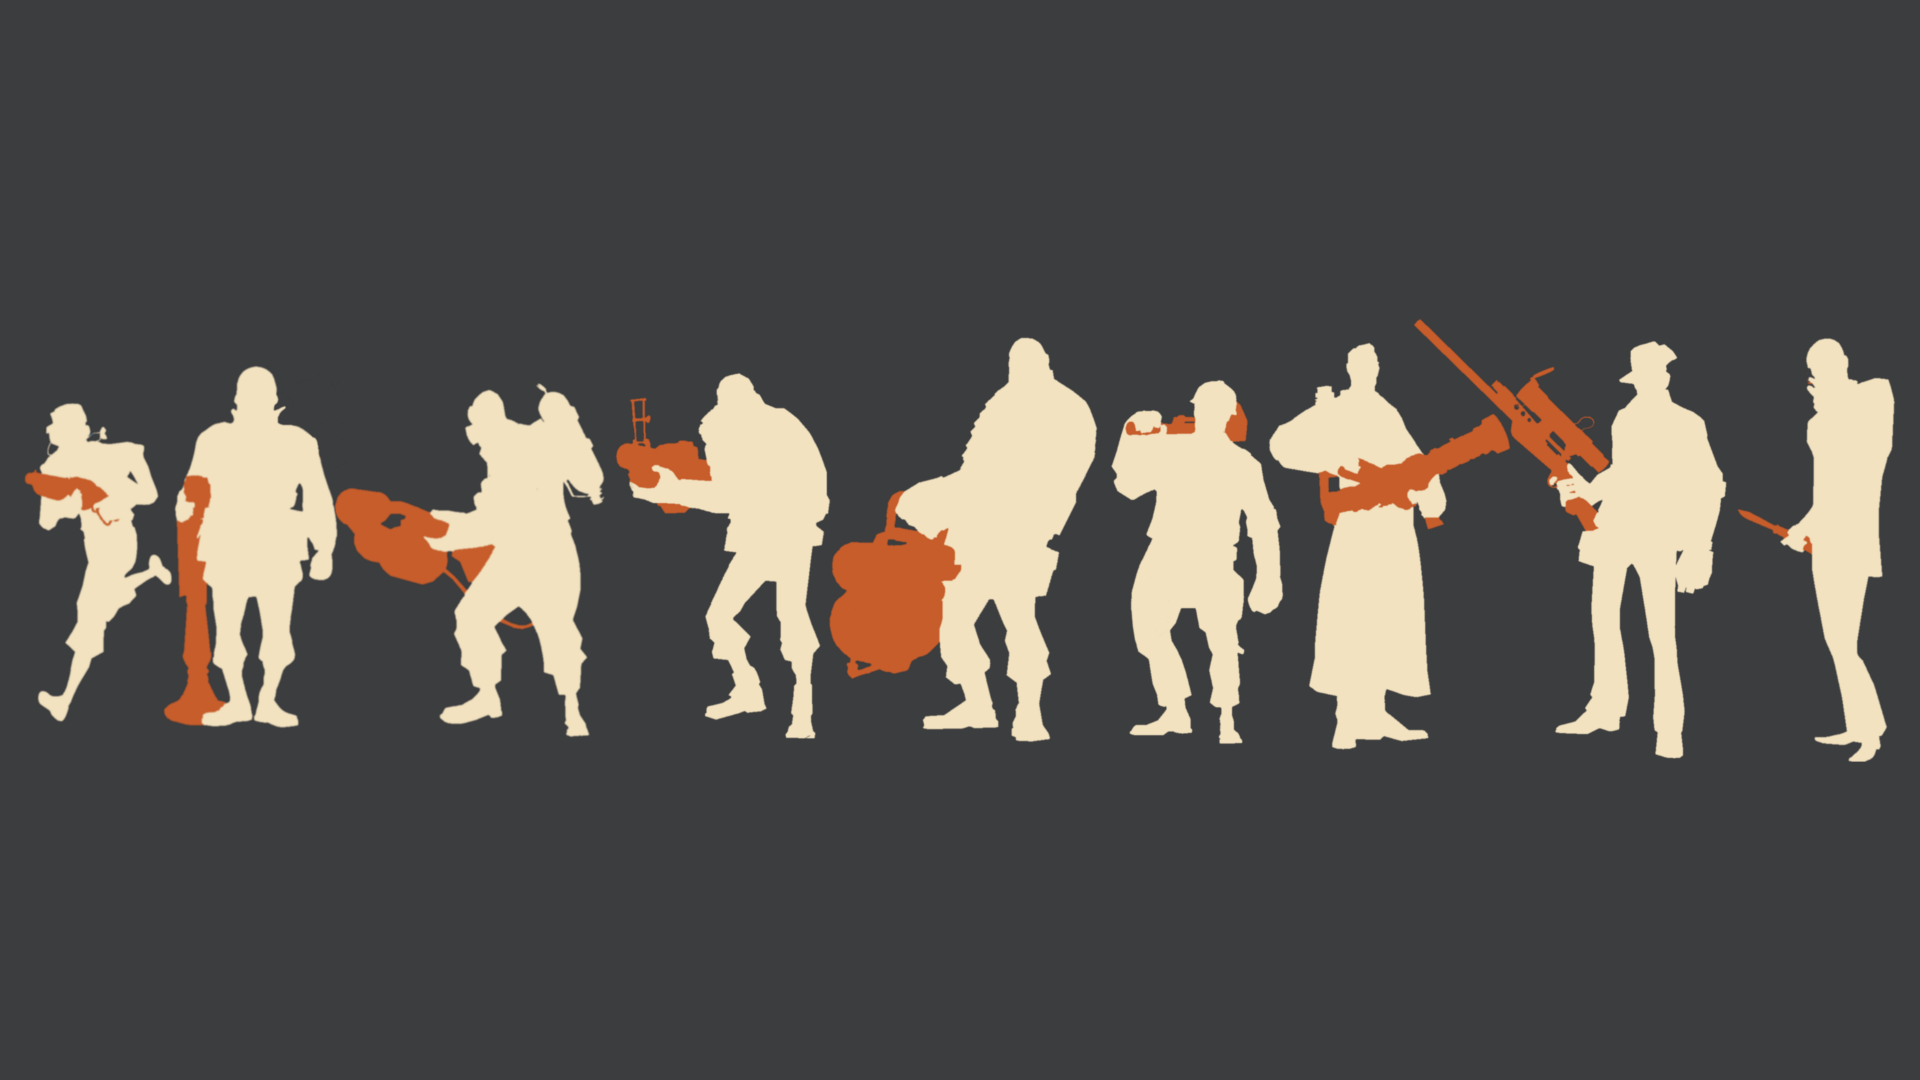 Tf2 HQFX Wallpaper Desktop